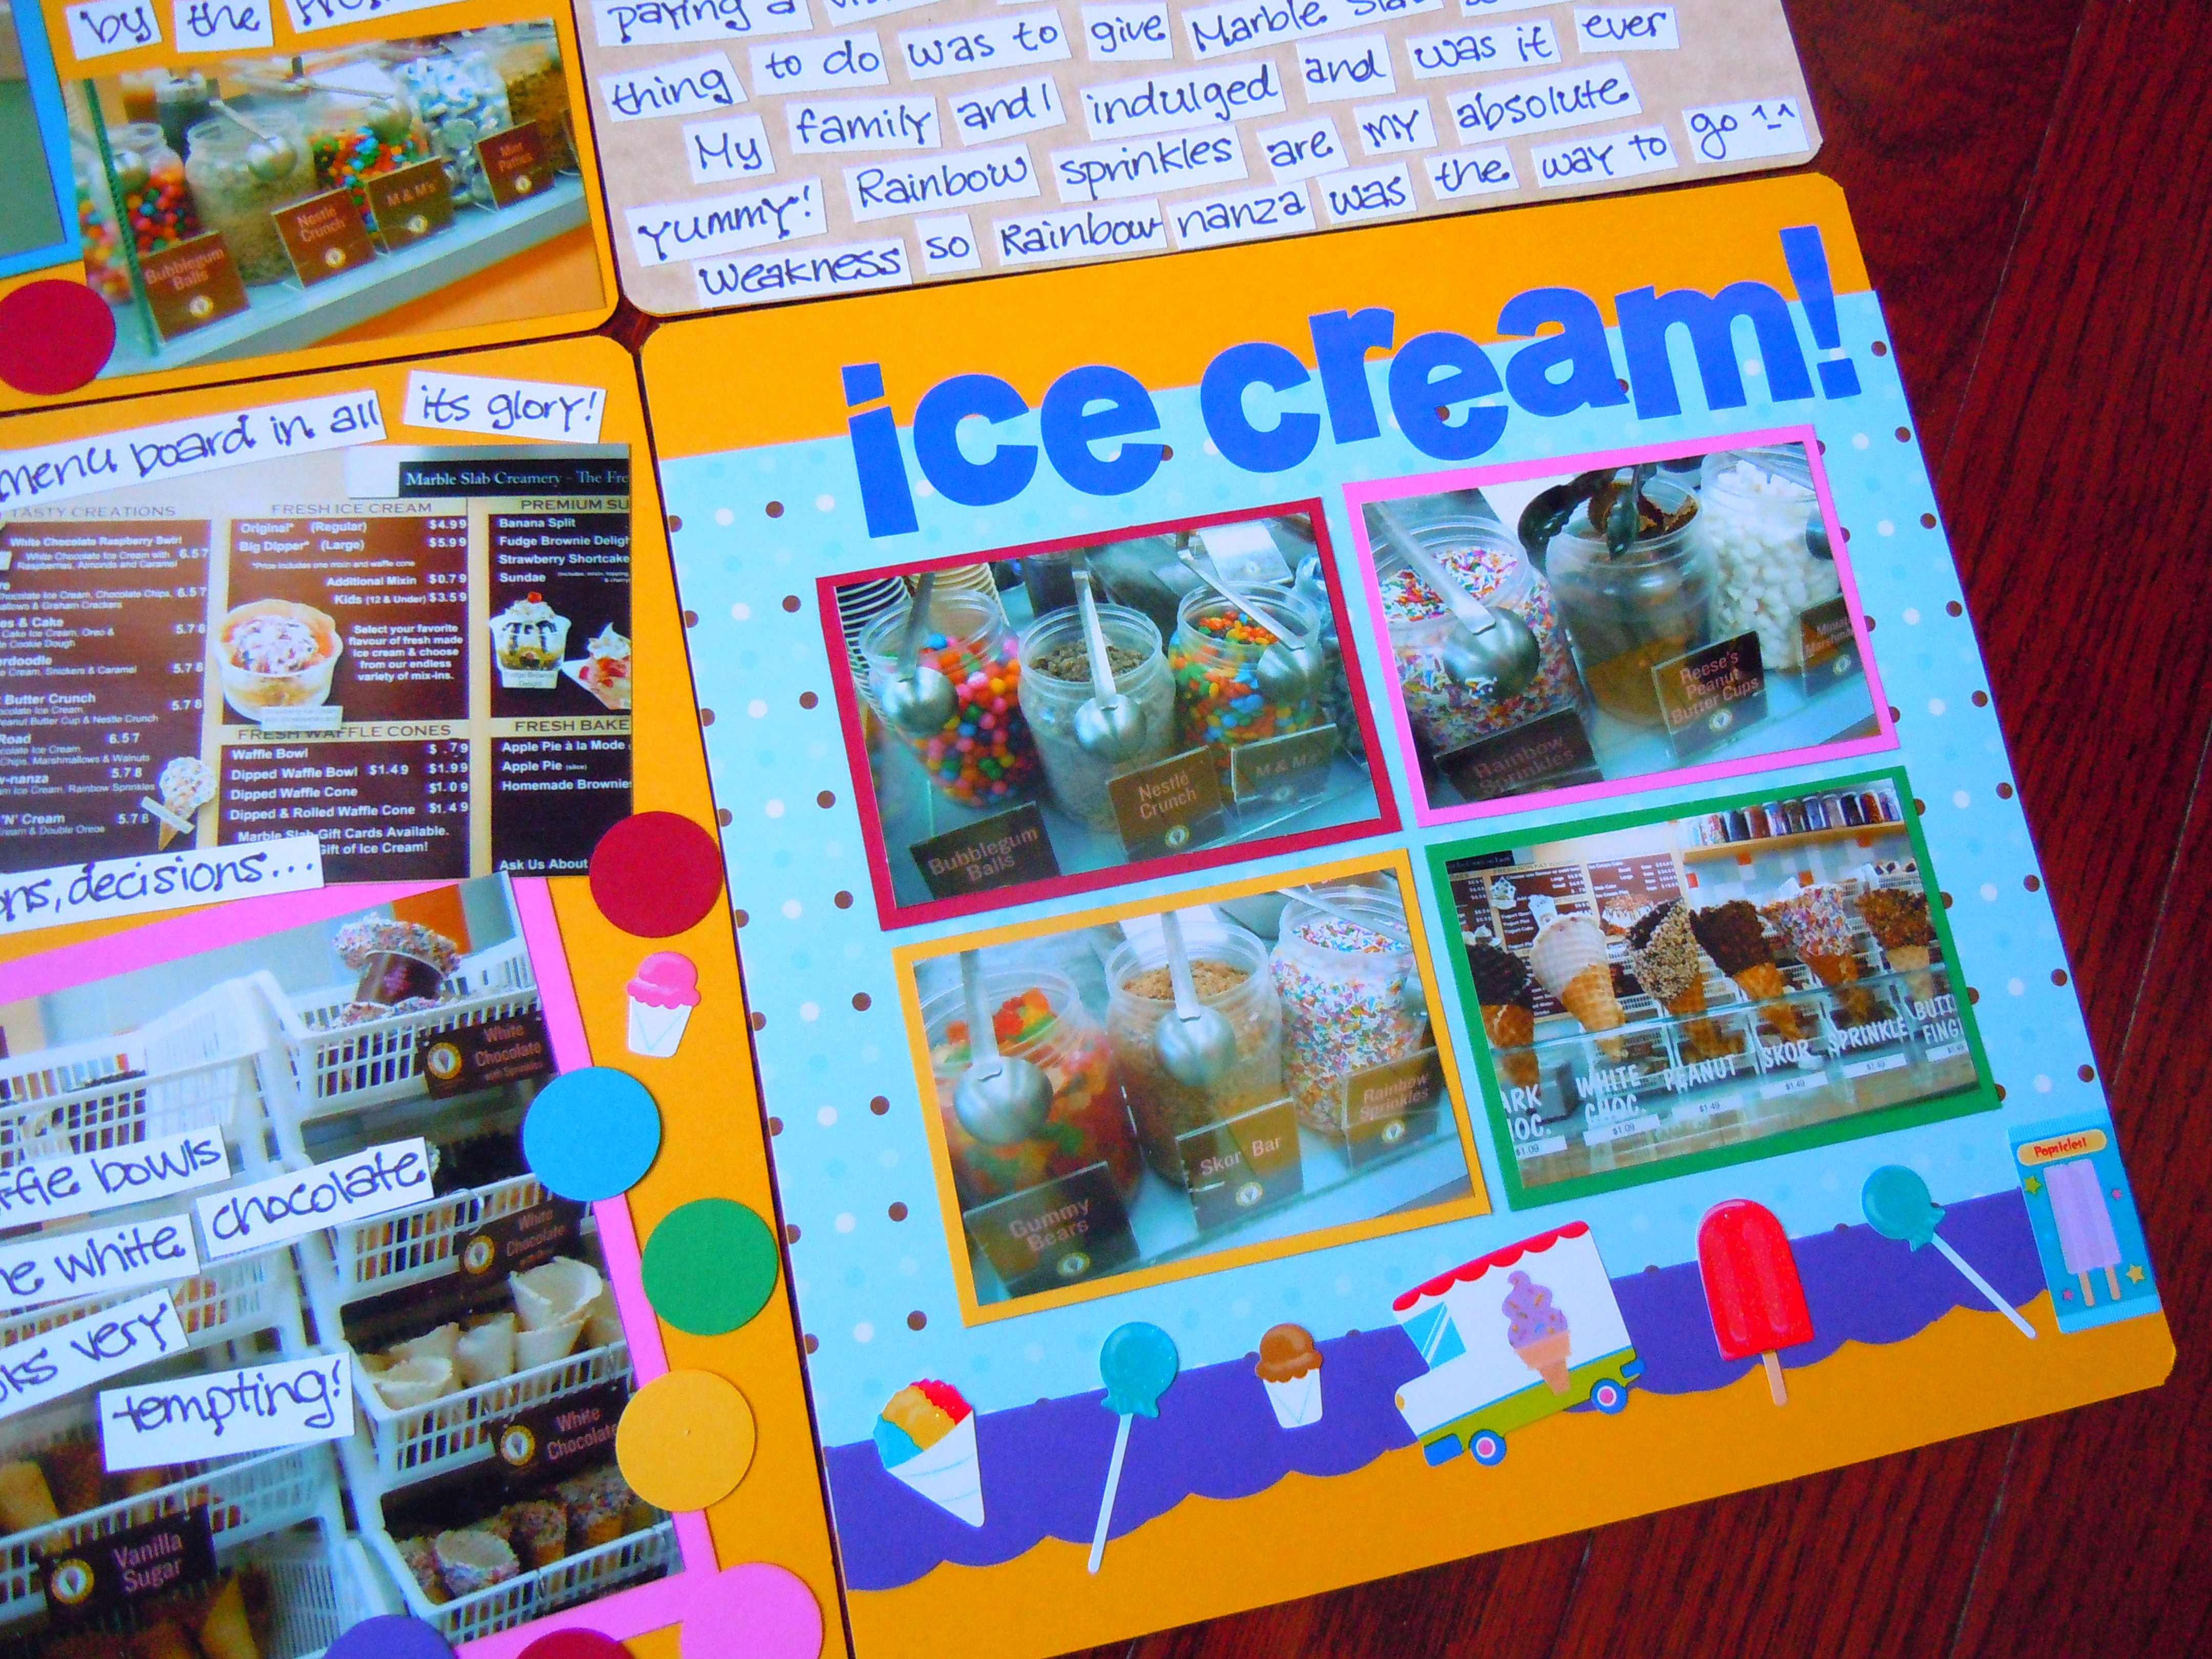 Scrapbook ideas rainbow - The Rainbow Esque Scrapbook Layout Of The Marble Slab Creamery Photos I Just Shared With You All Punching Out Circles Of Paper In A Rainbow Of Colours And